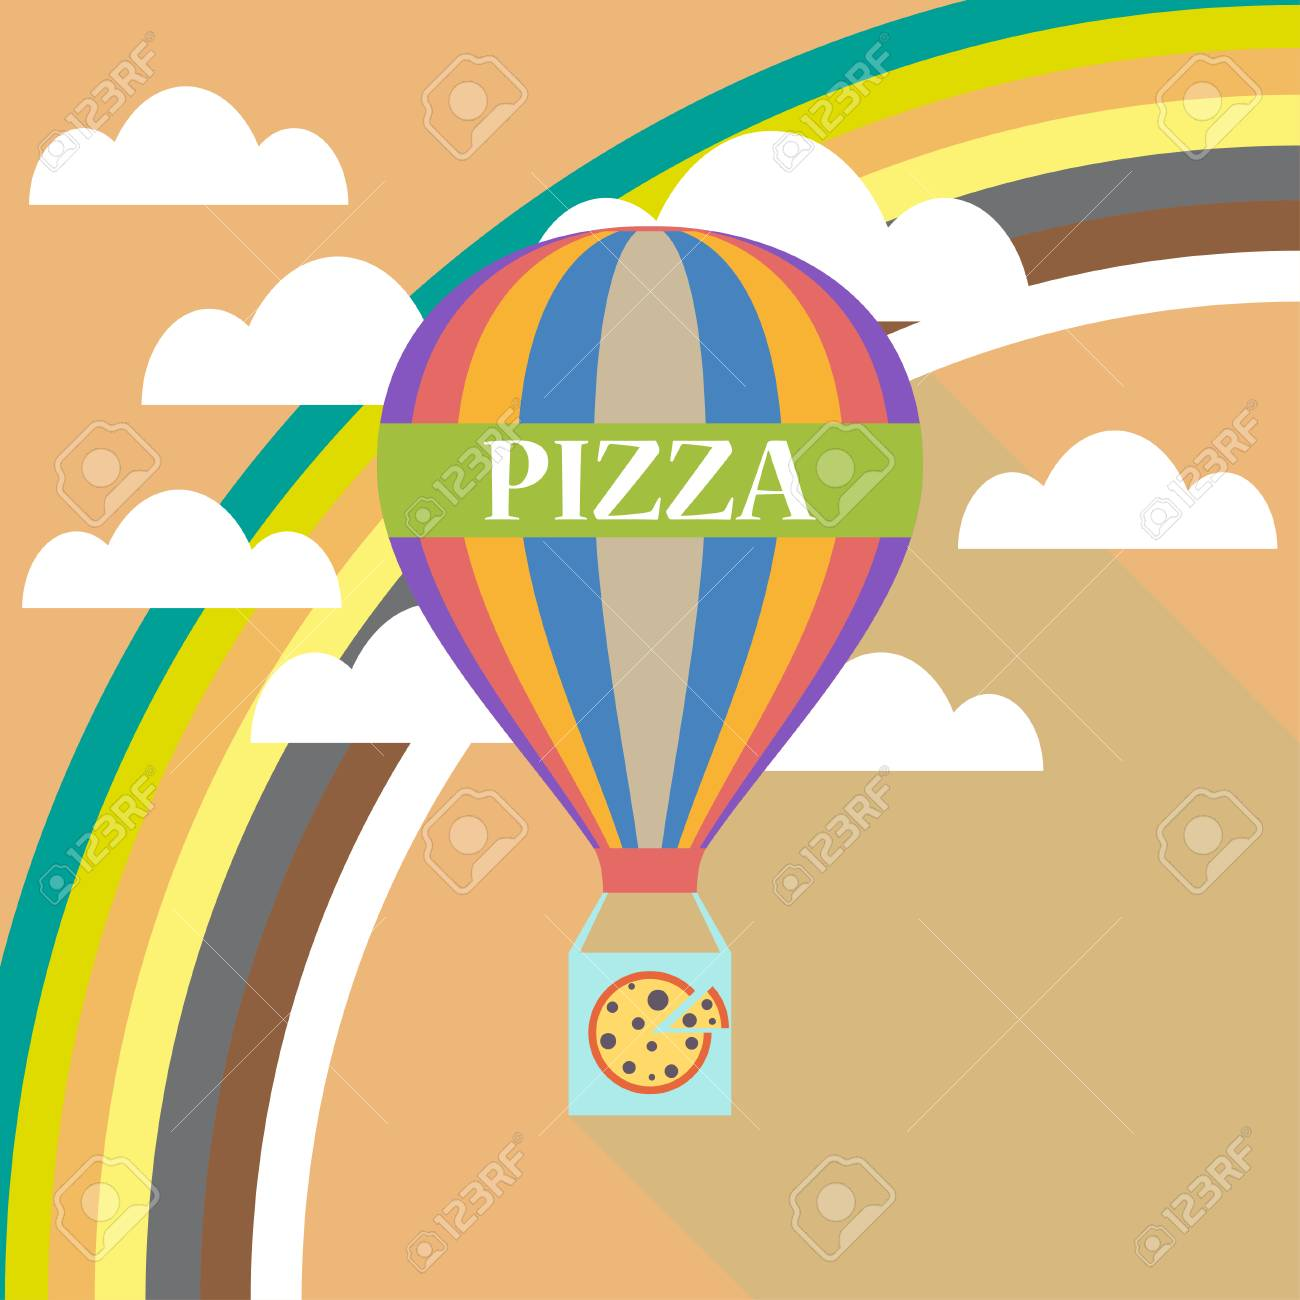 air balloon pizza delivery flat design royalty free cliparts